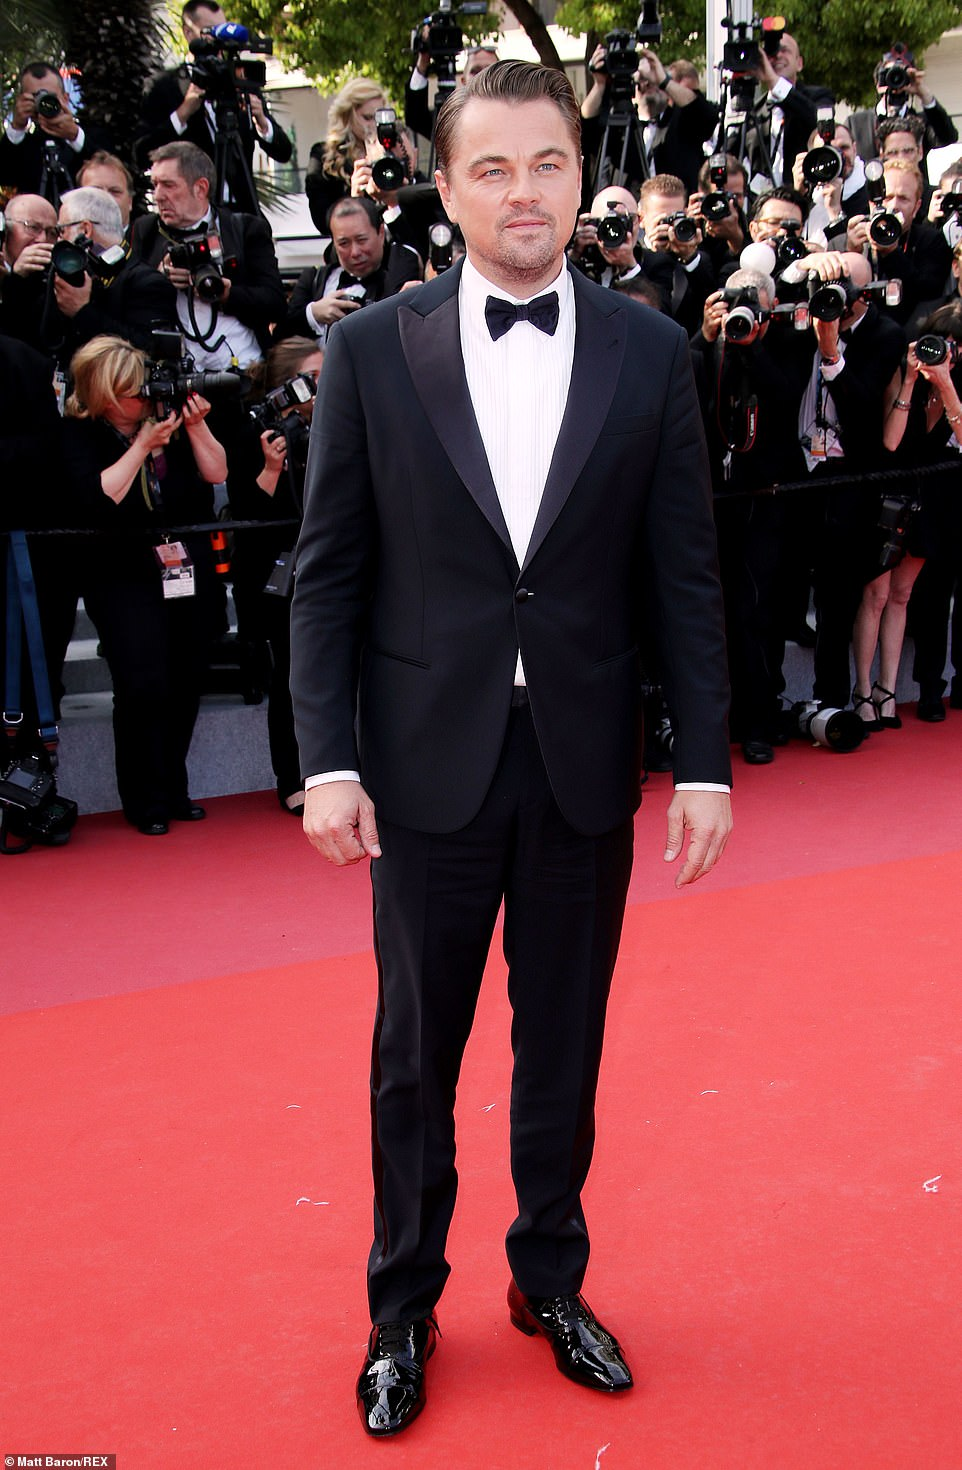 Suave: Leonardo looked as suave as ever in his black sharp suit as he arrived for the star-studded film event after appearing in his second Tarantino film